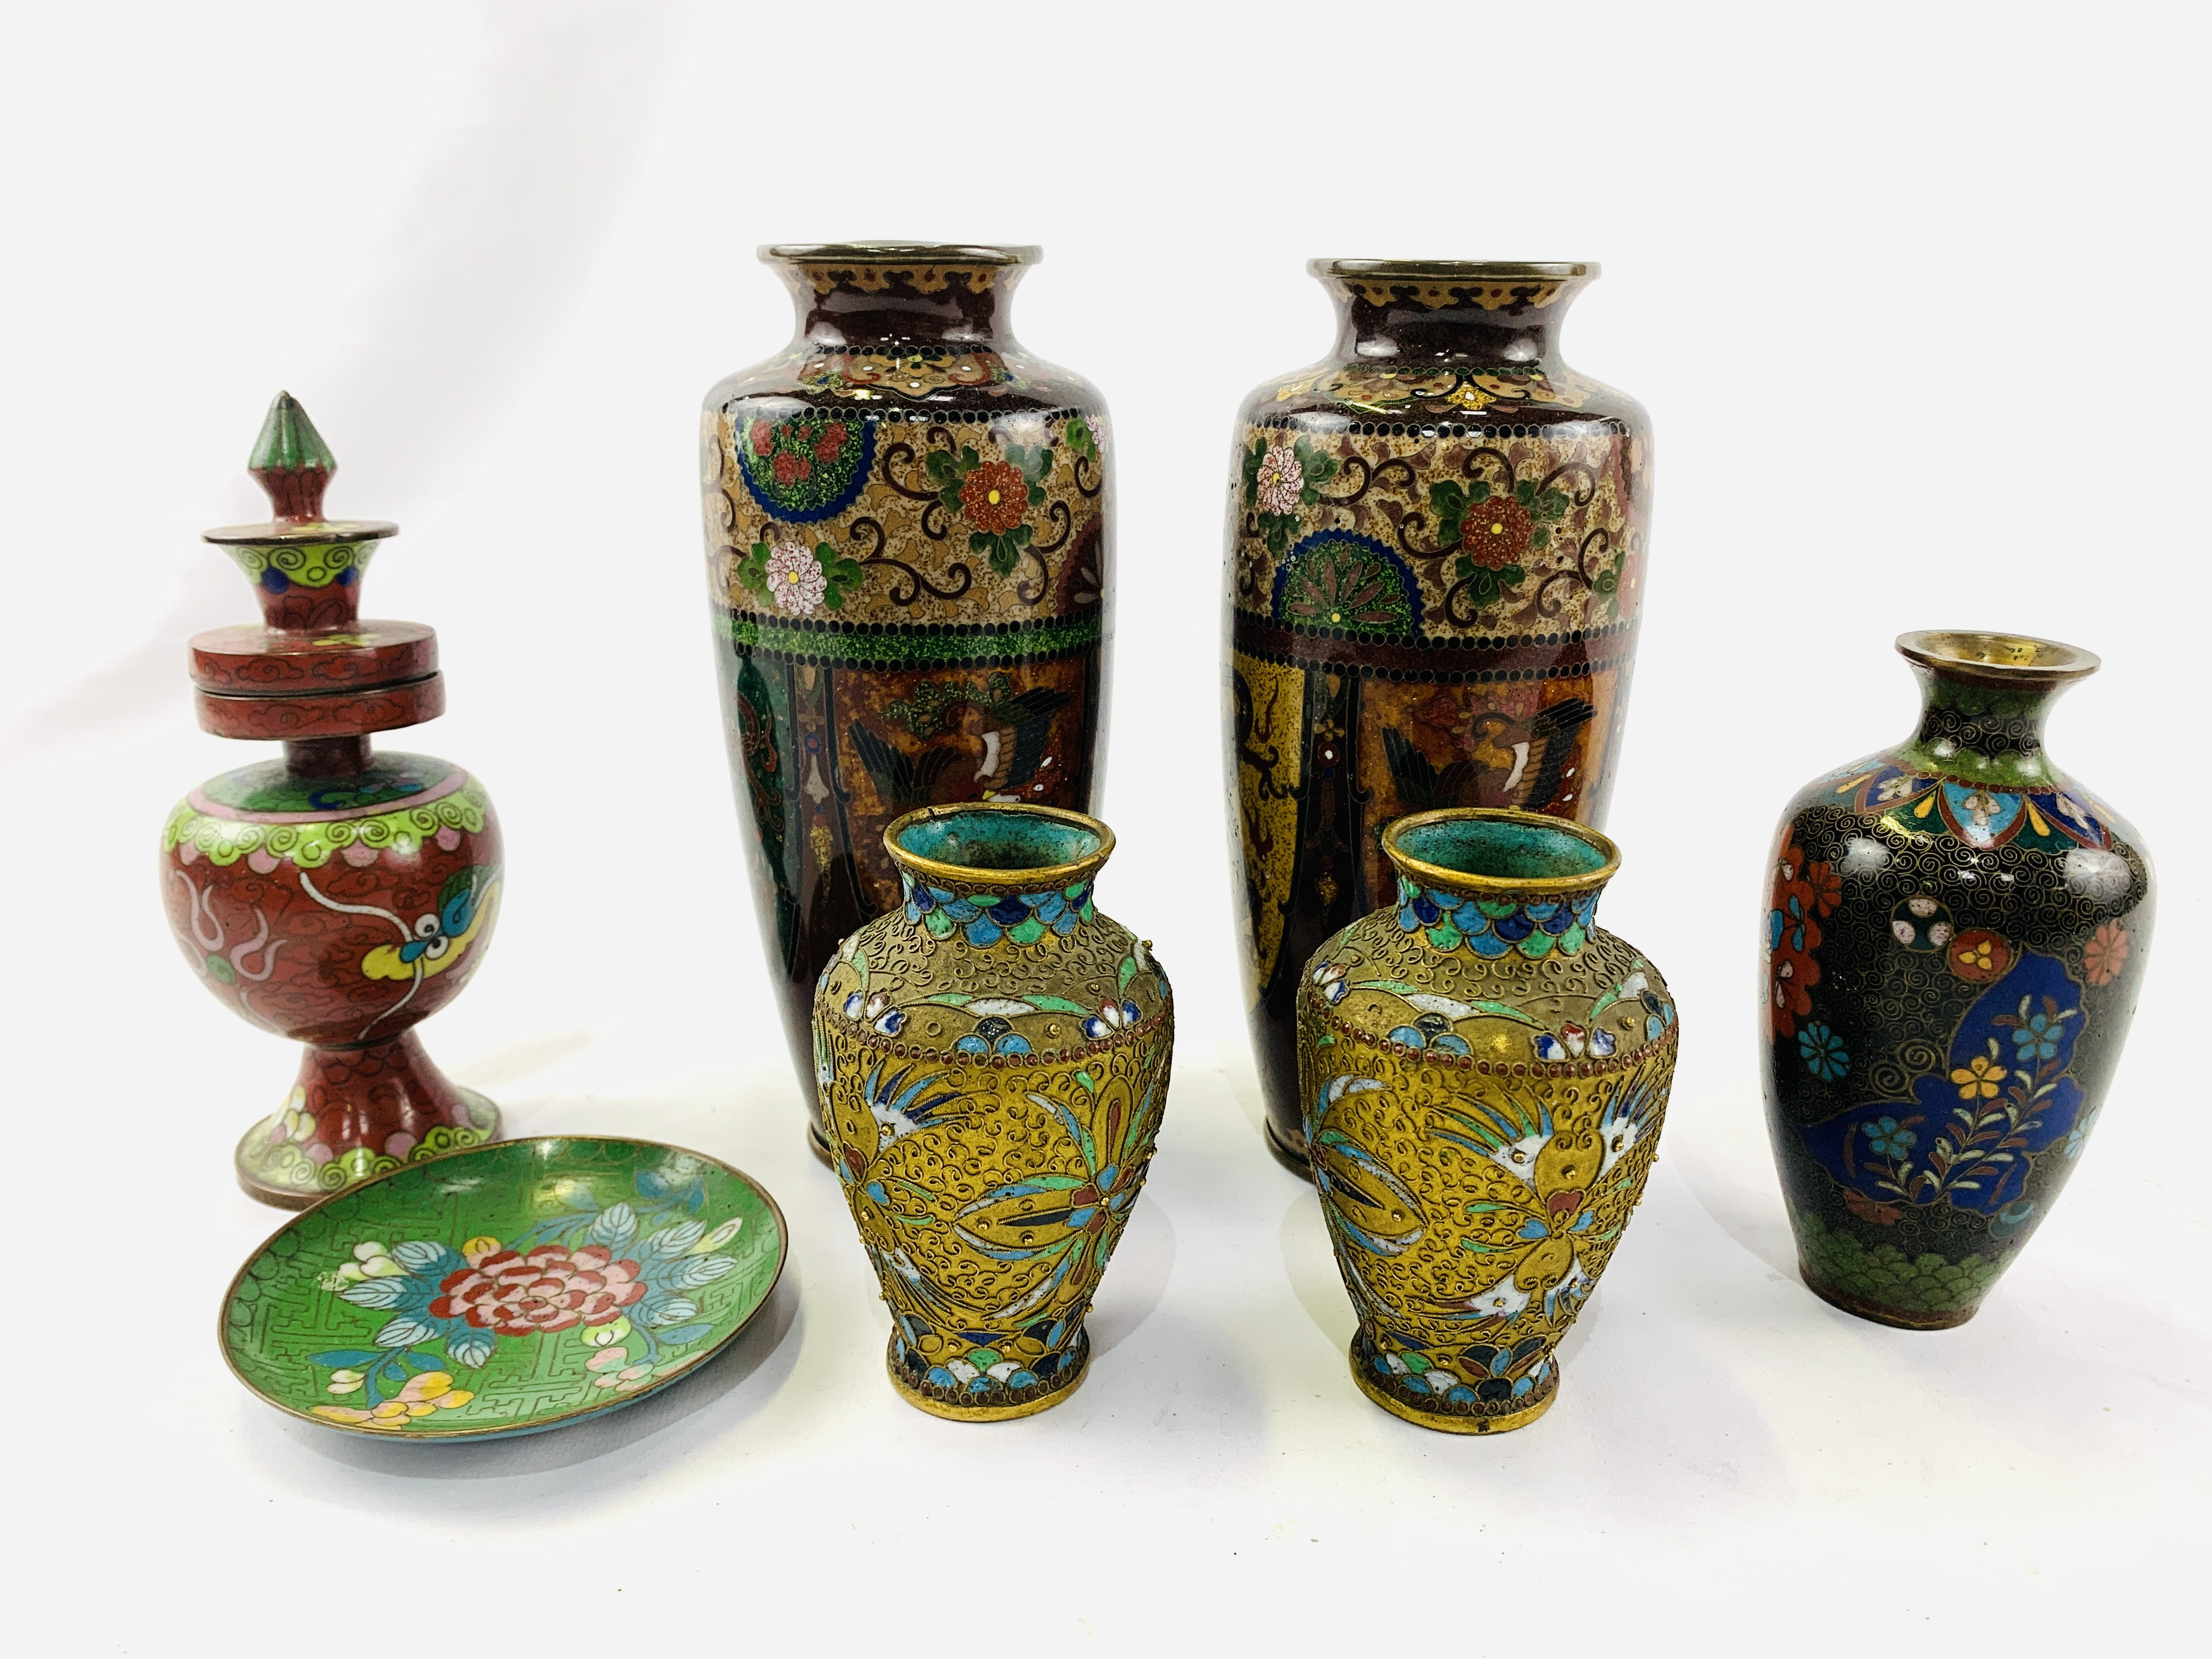 Collection of cloisonné objects